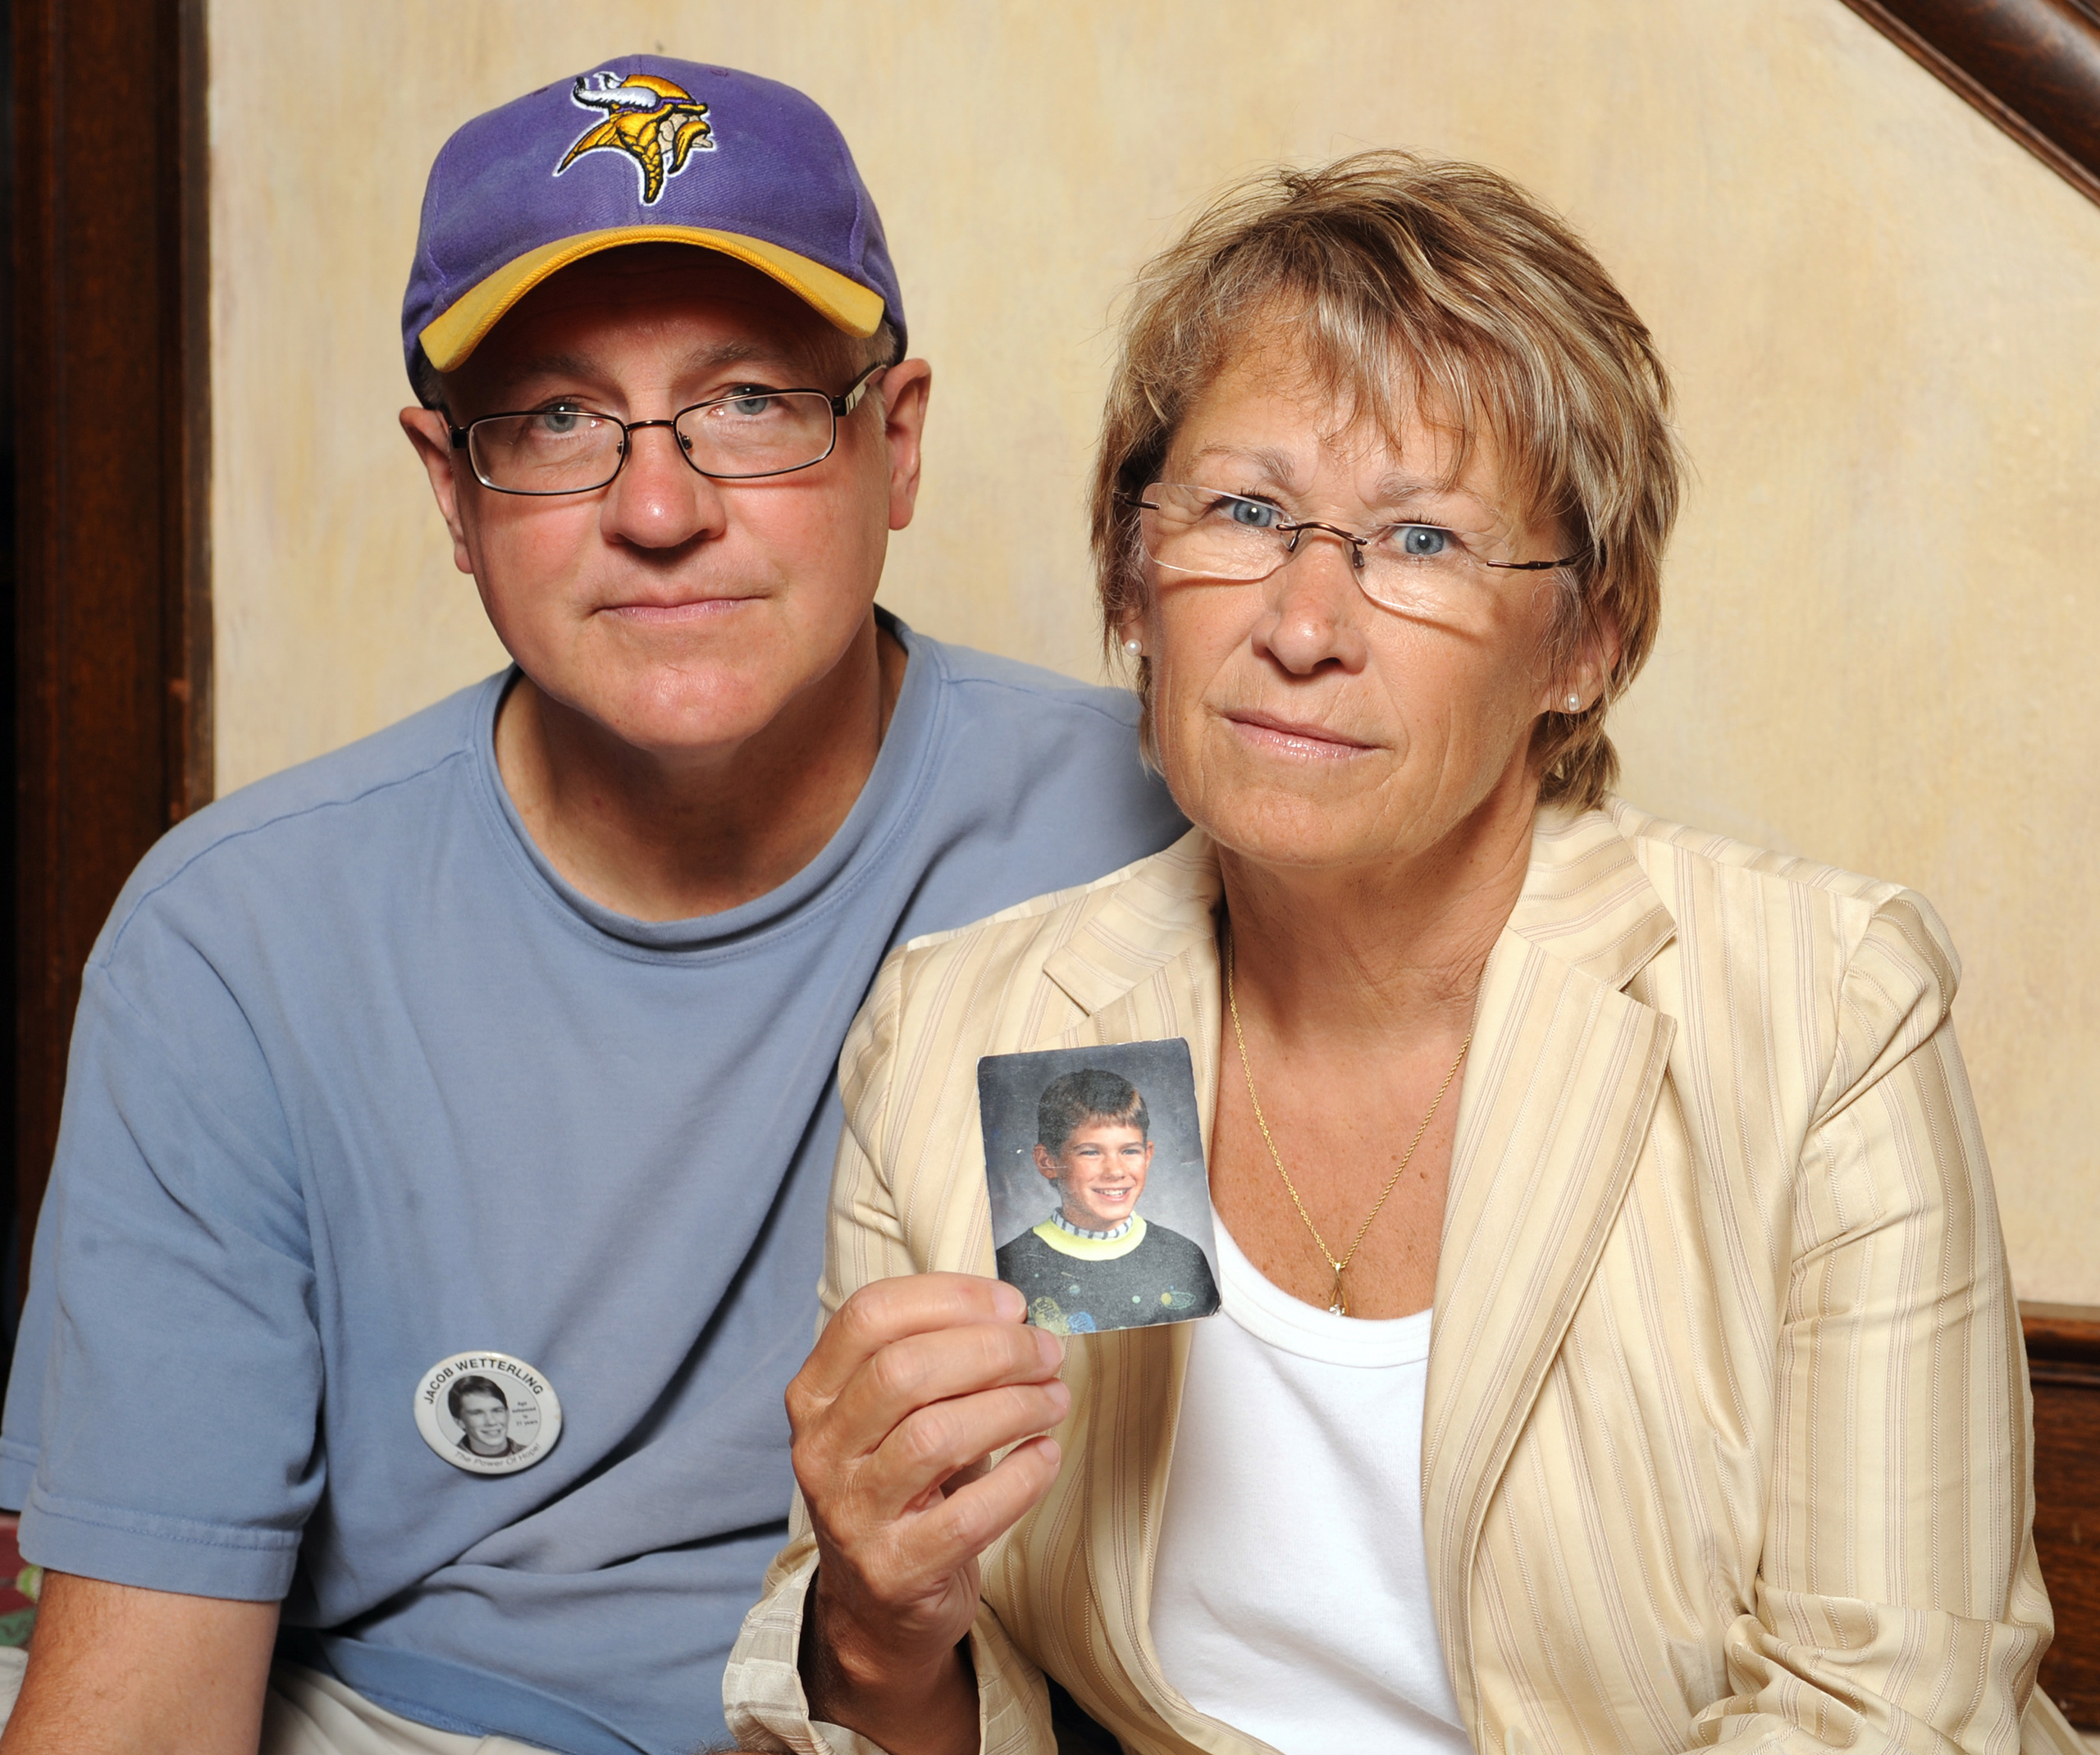 Patty and Jerry Wetterling show a photo of their son Jacob Wetterling, who was abducted in October of 1989 in St. Joseph, Minnesota, Aug. 28, 2009.